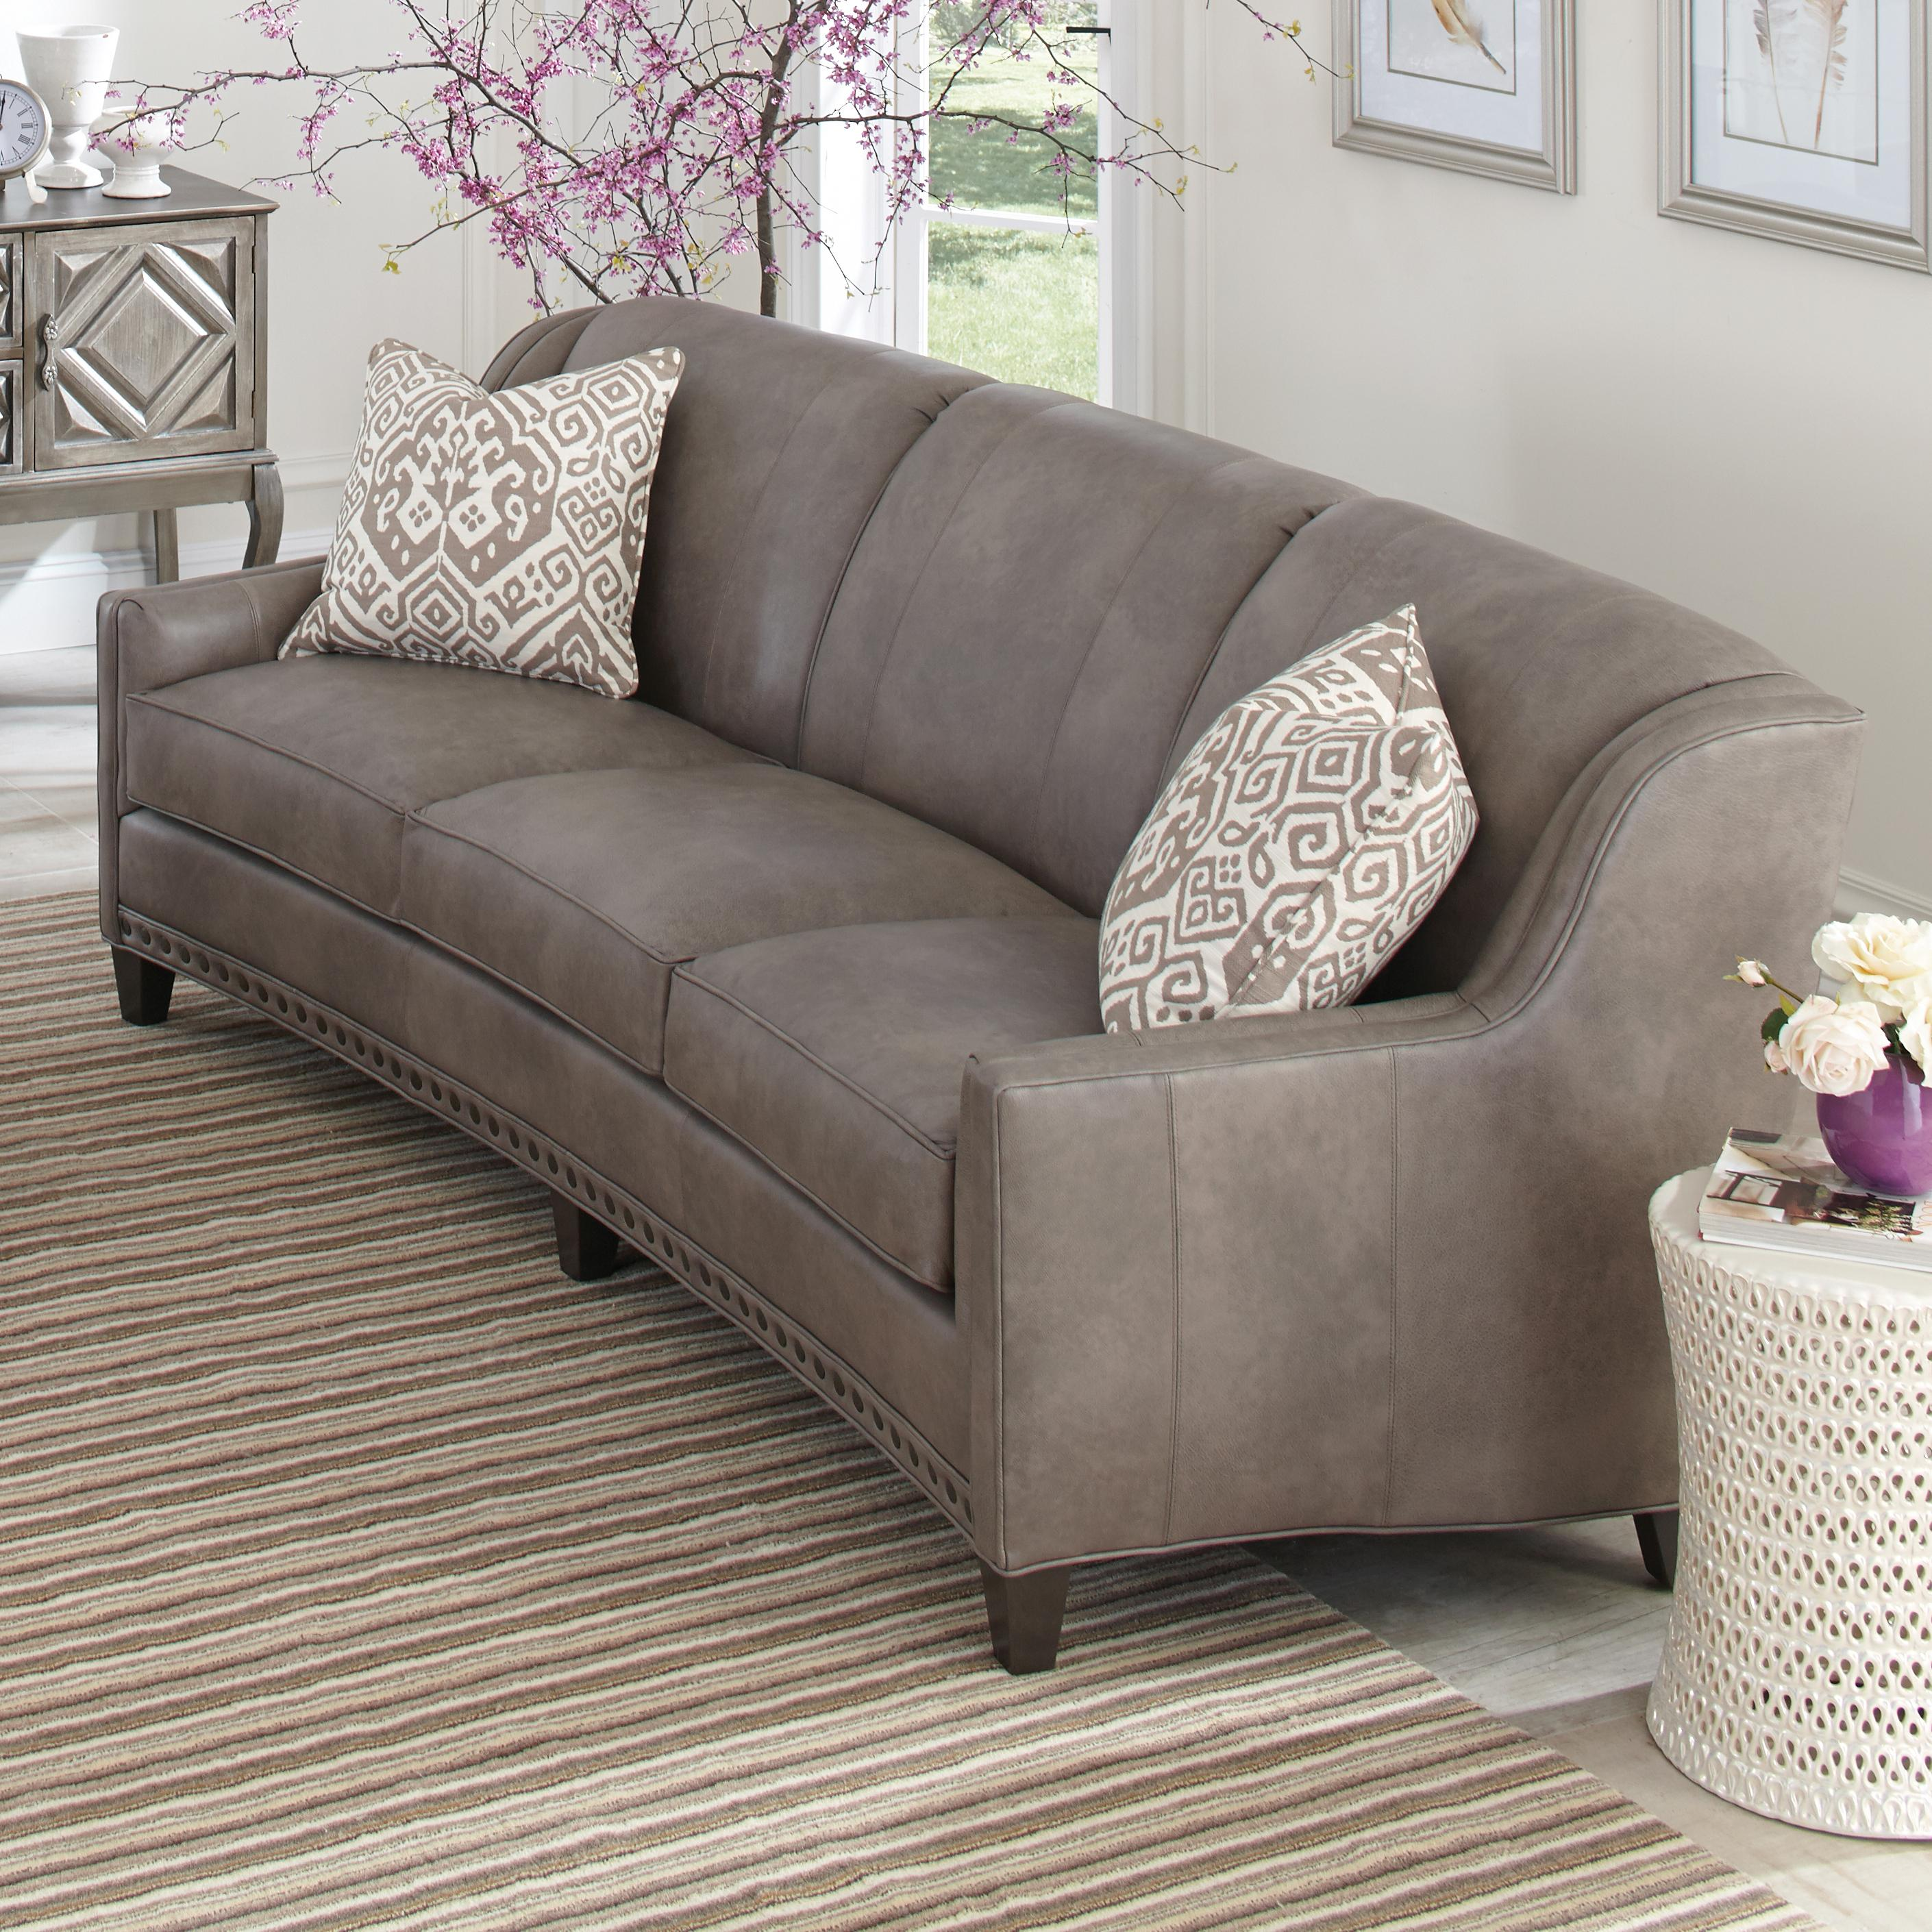 227 Stationary Sofa by Smith Brothers at Rooms for Less